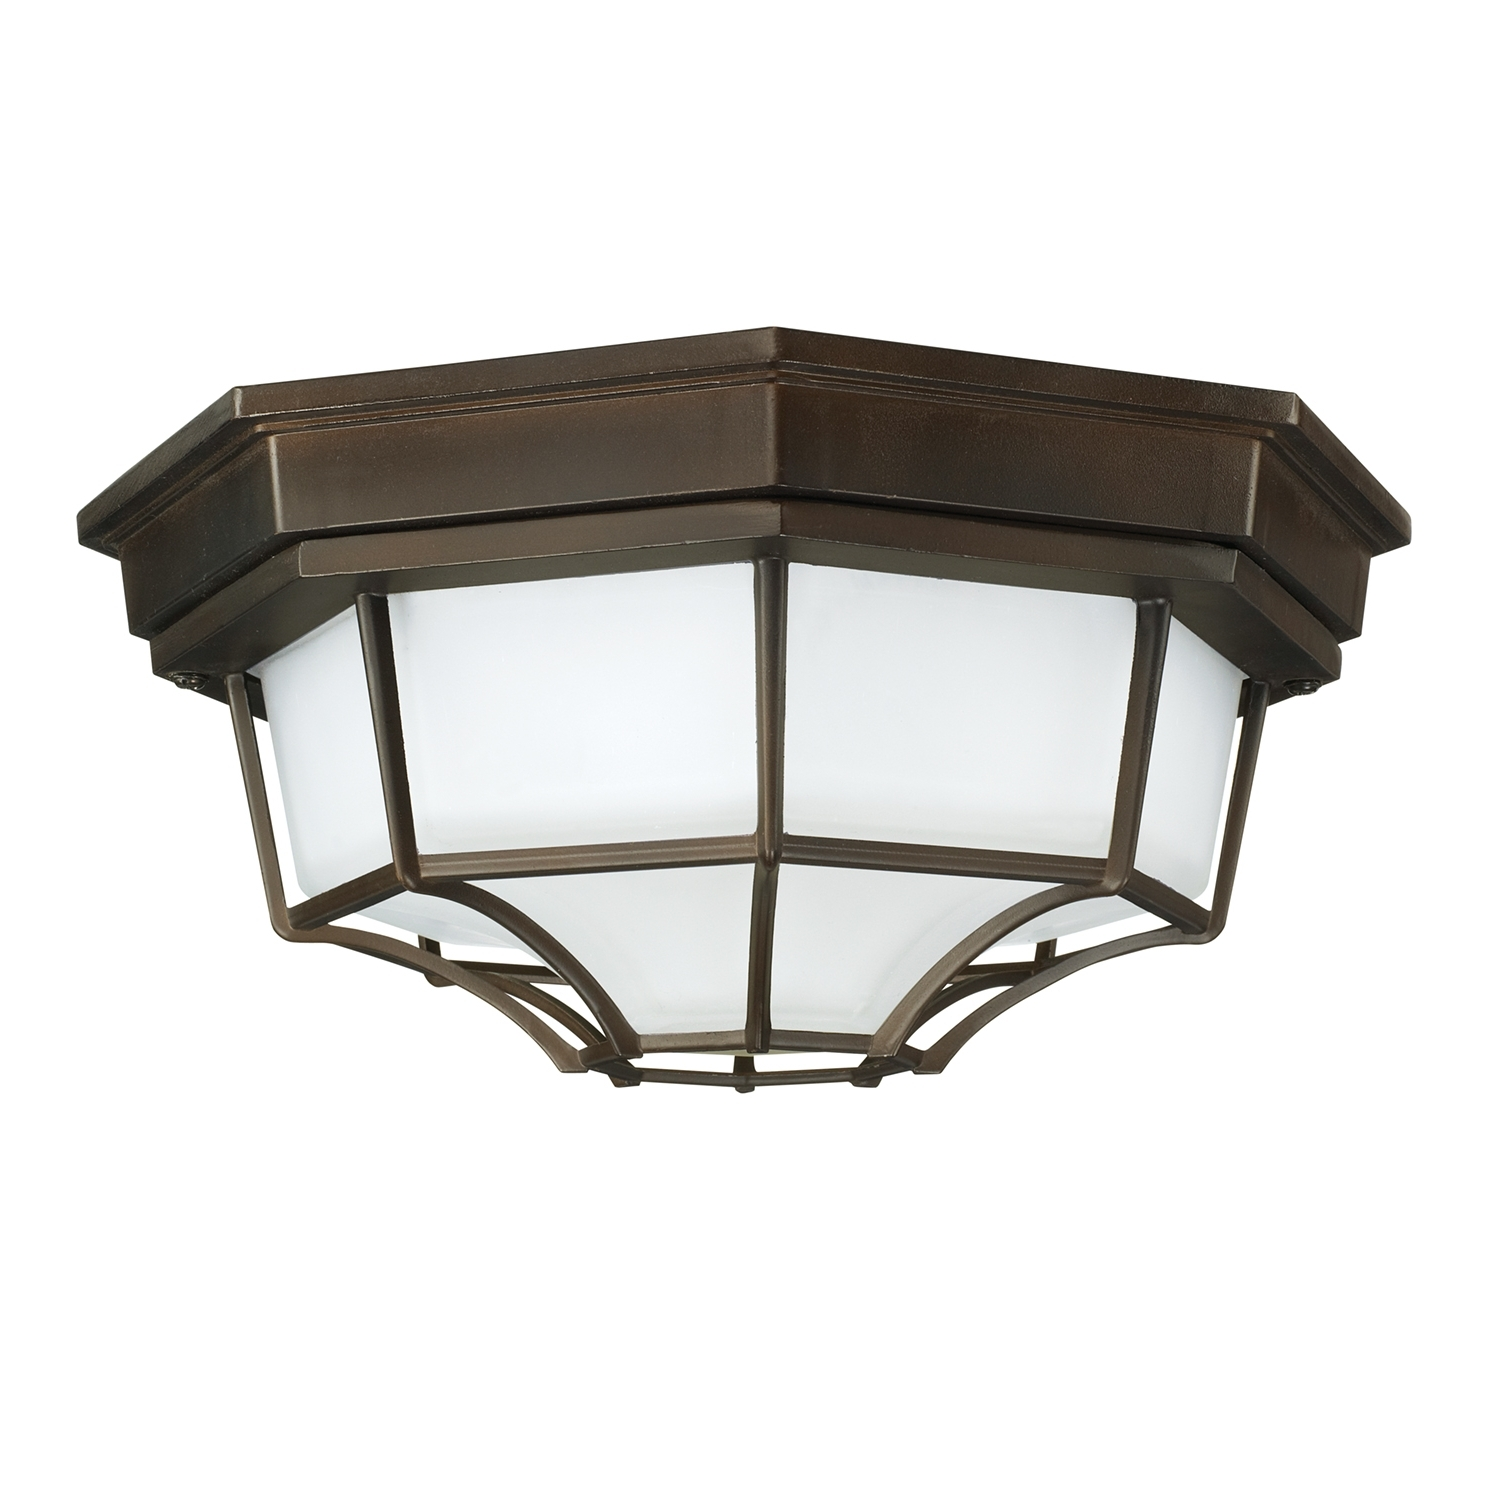 Capital Lighting Throughout Trendy Dusk To Dawn Outdoor Ceiling Lights (Gallery 9 of 20)